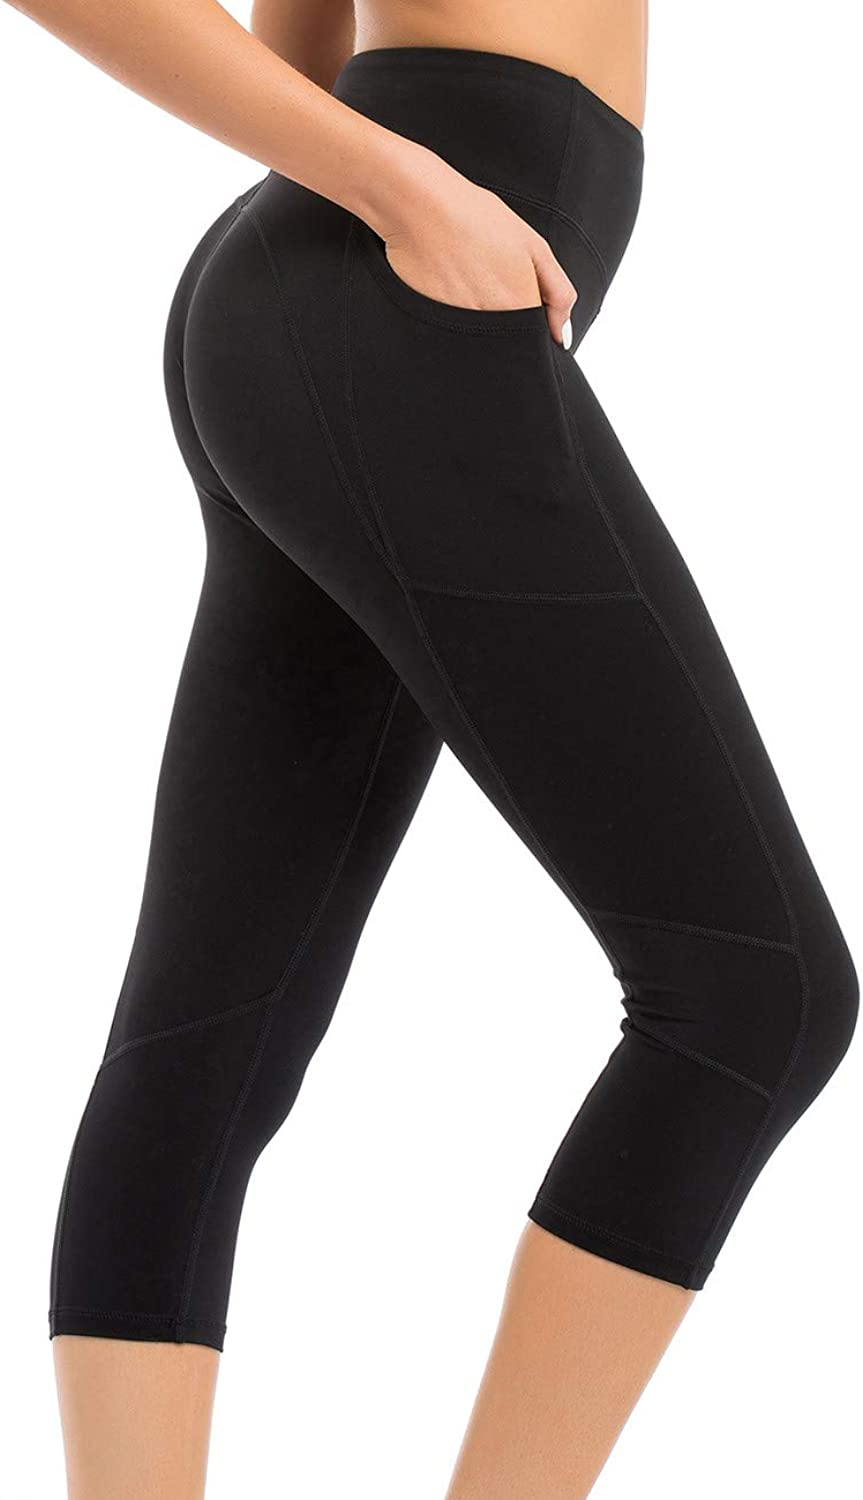 Coastal pink Women's Yoga Pants 3 4 Workout Leggings Crop Sports Tights with Side Pocket